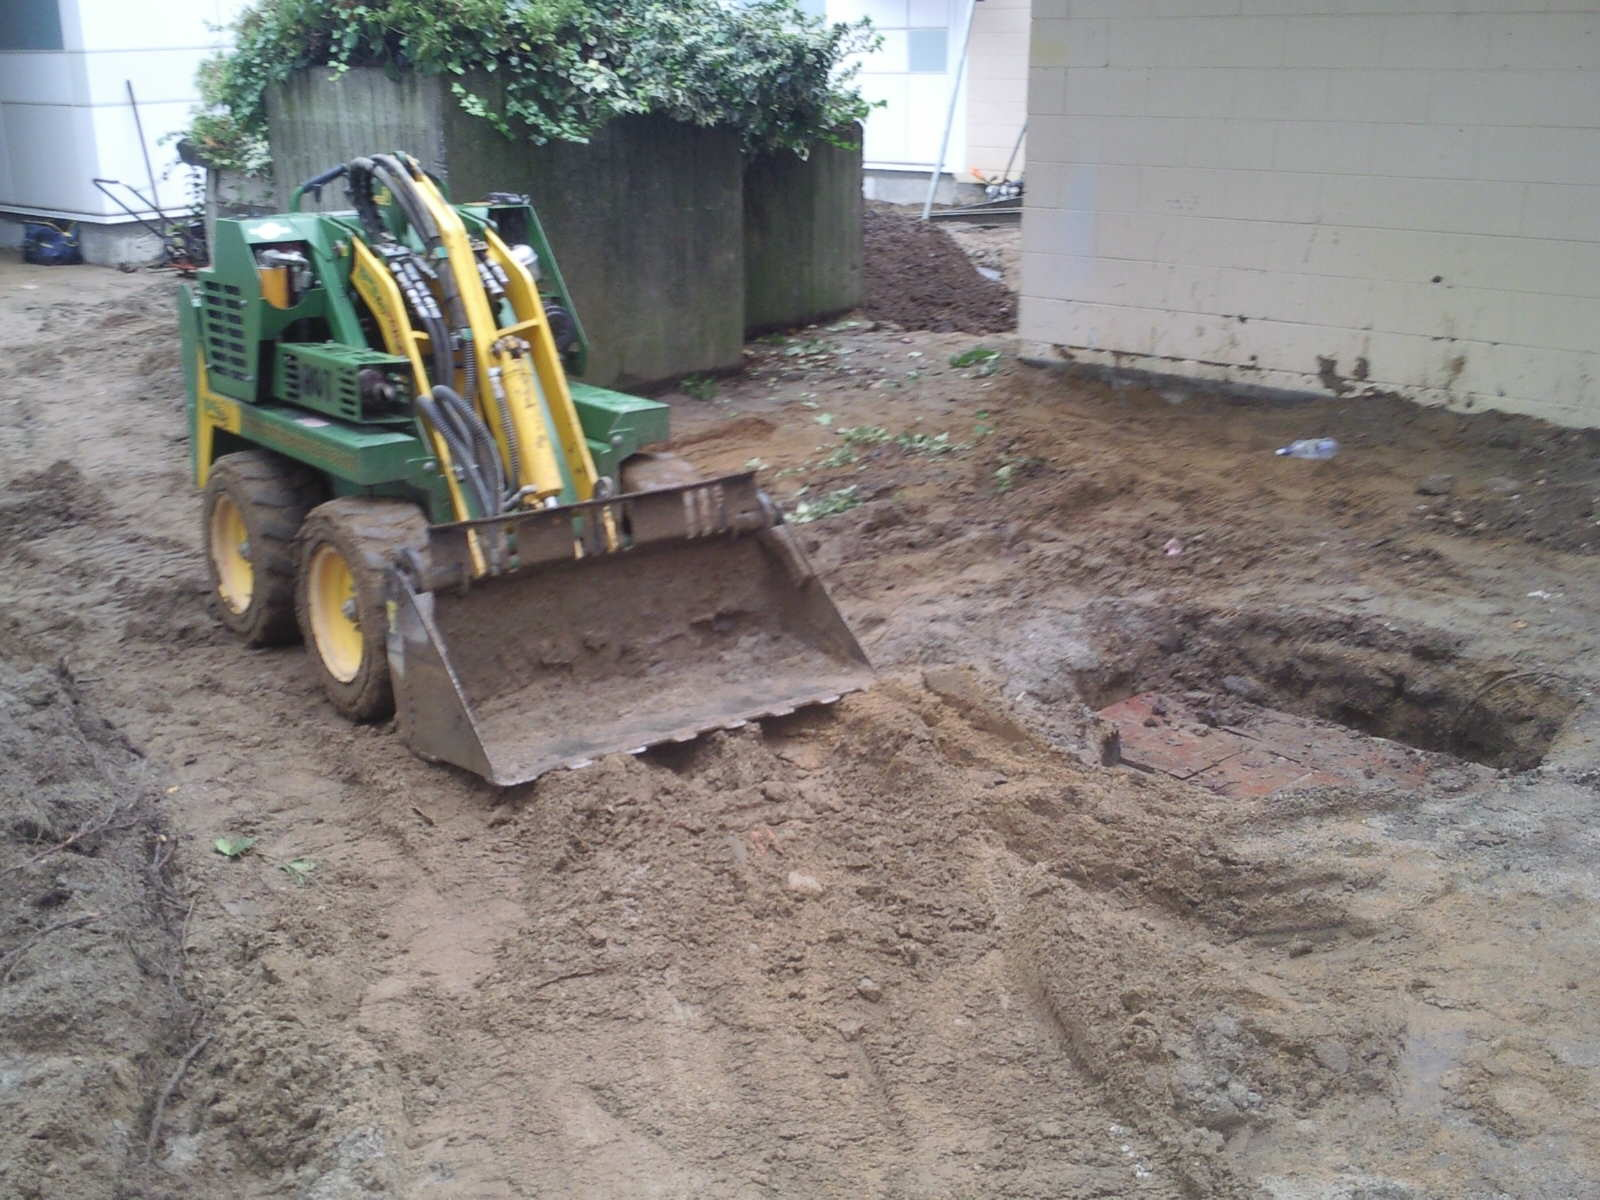 Expert excavation services in Hamilton, NZ